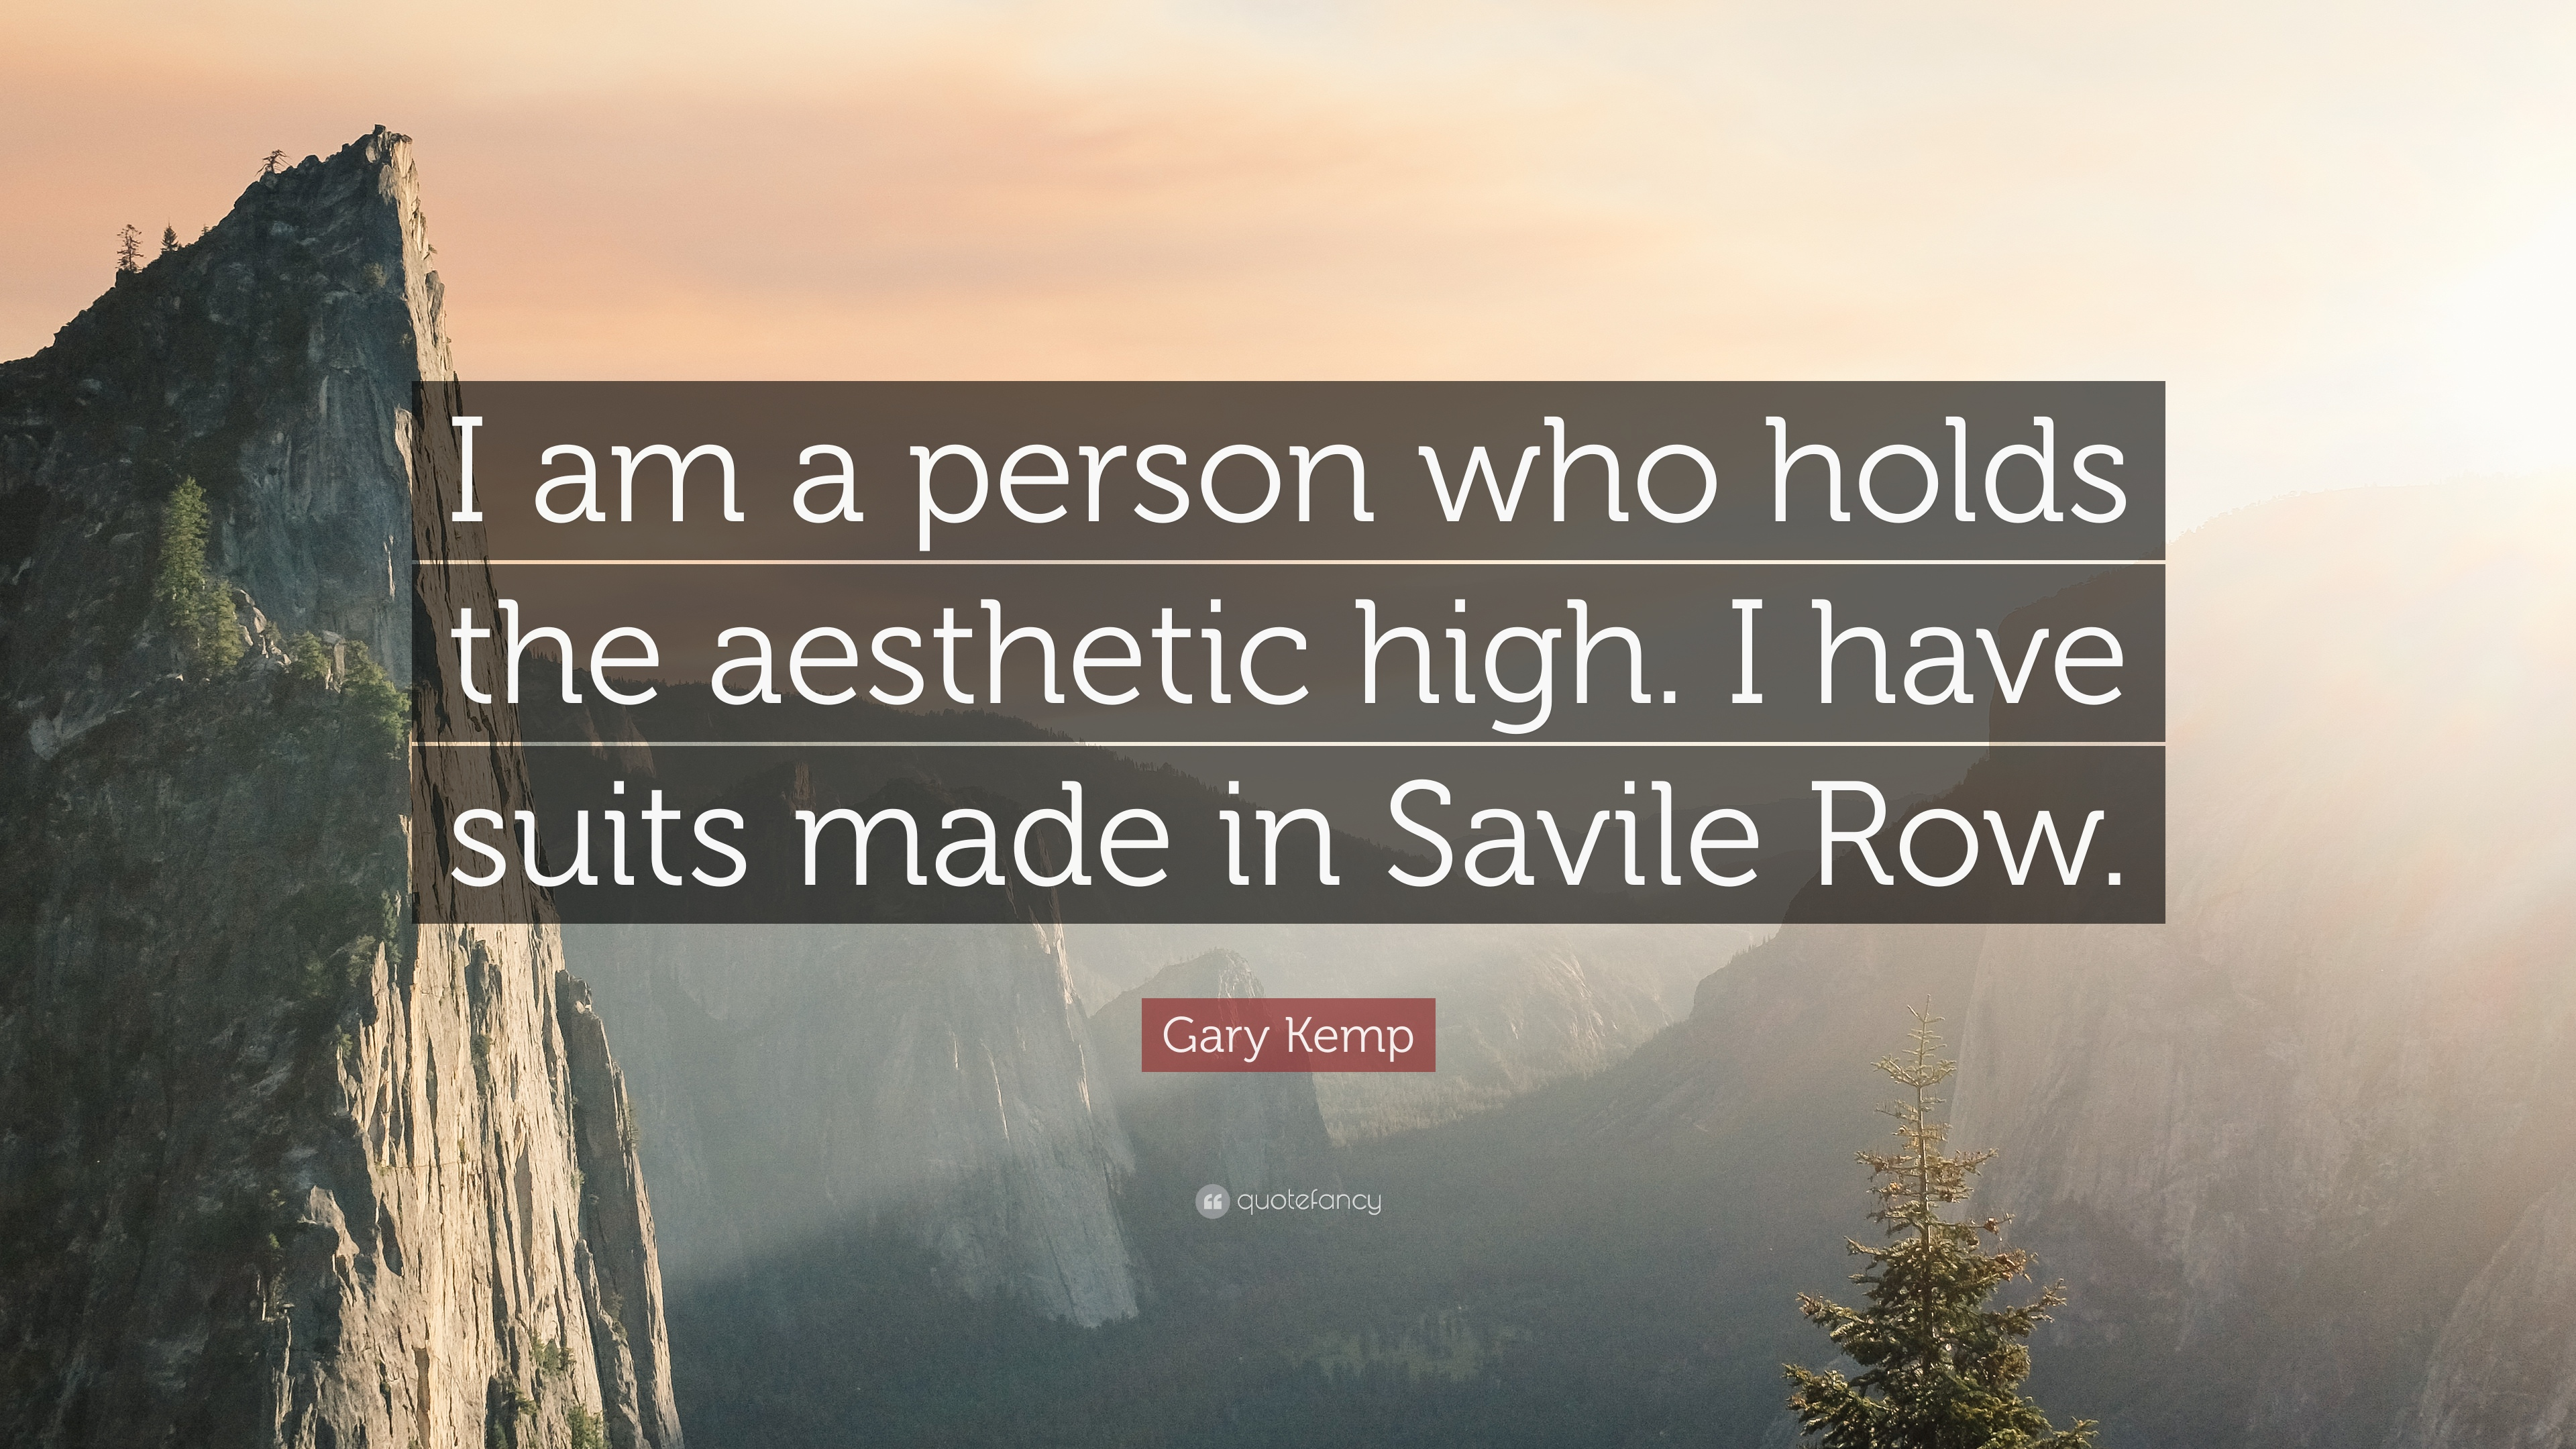 1316244 Gary Kemp Quote I am a person who holds the aesthetic high I have